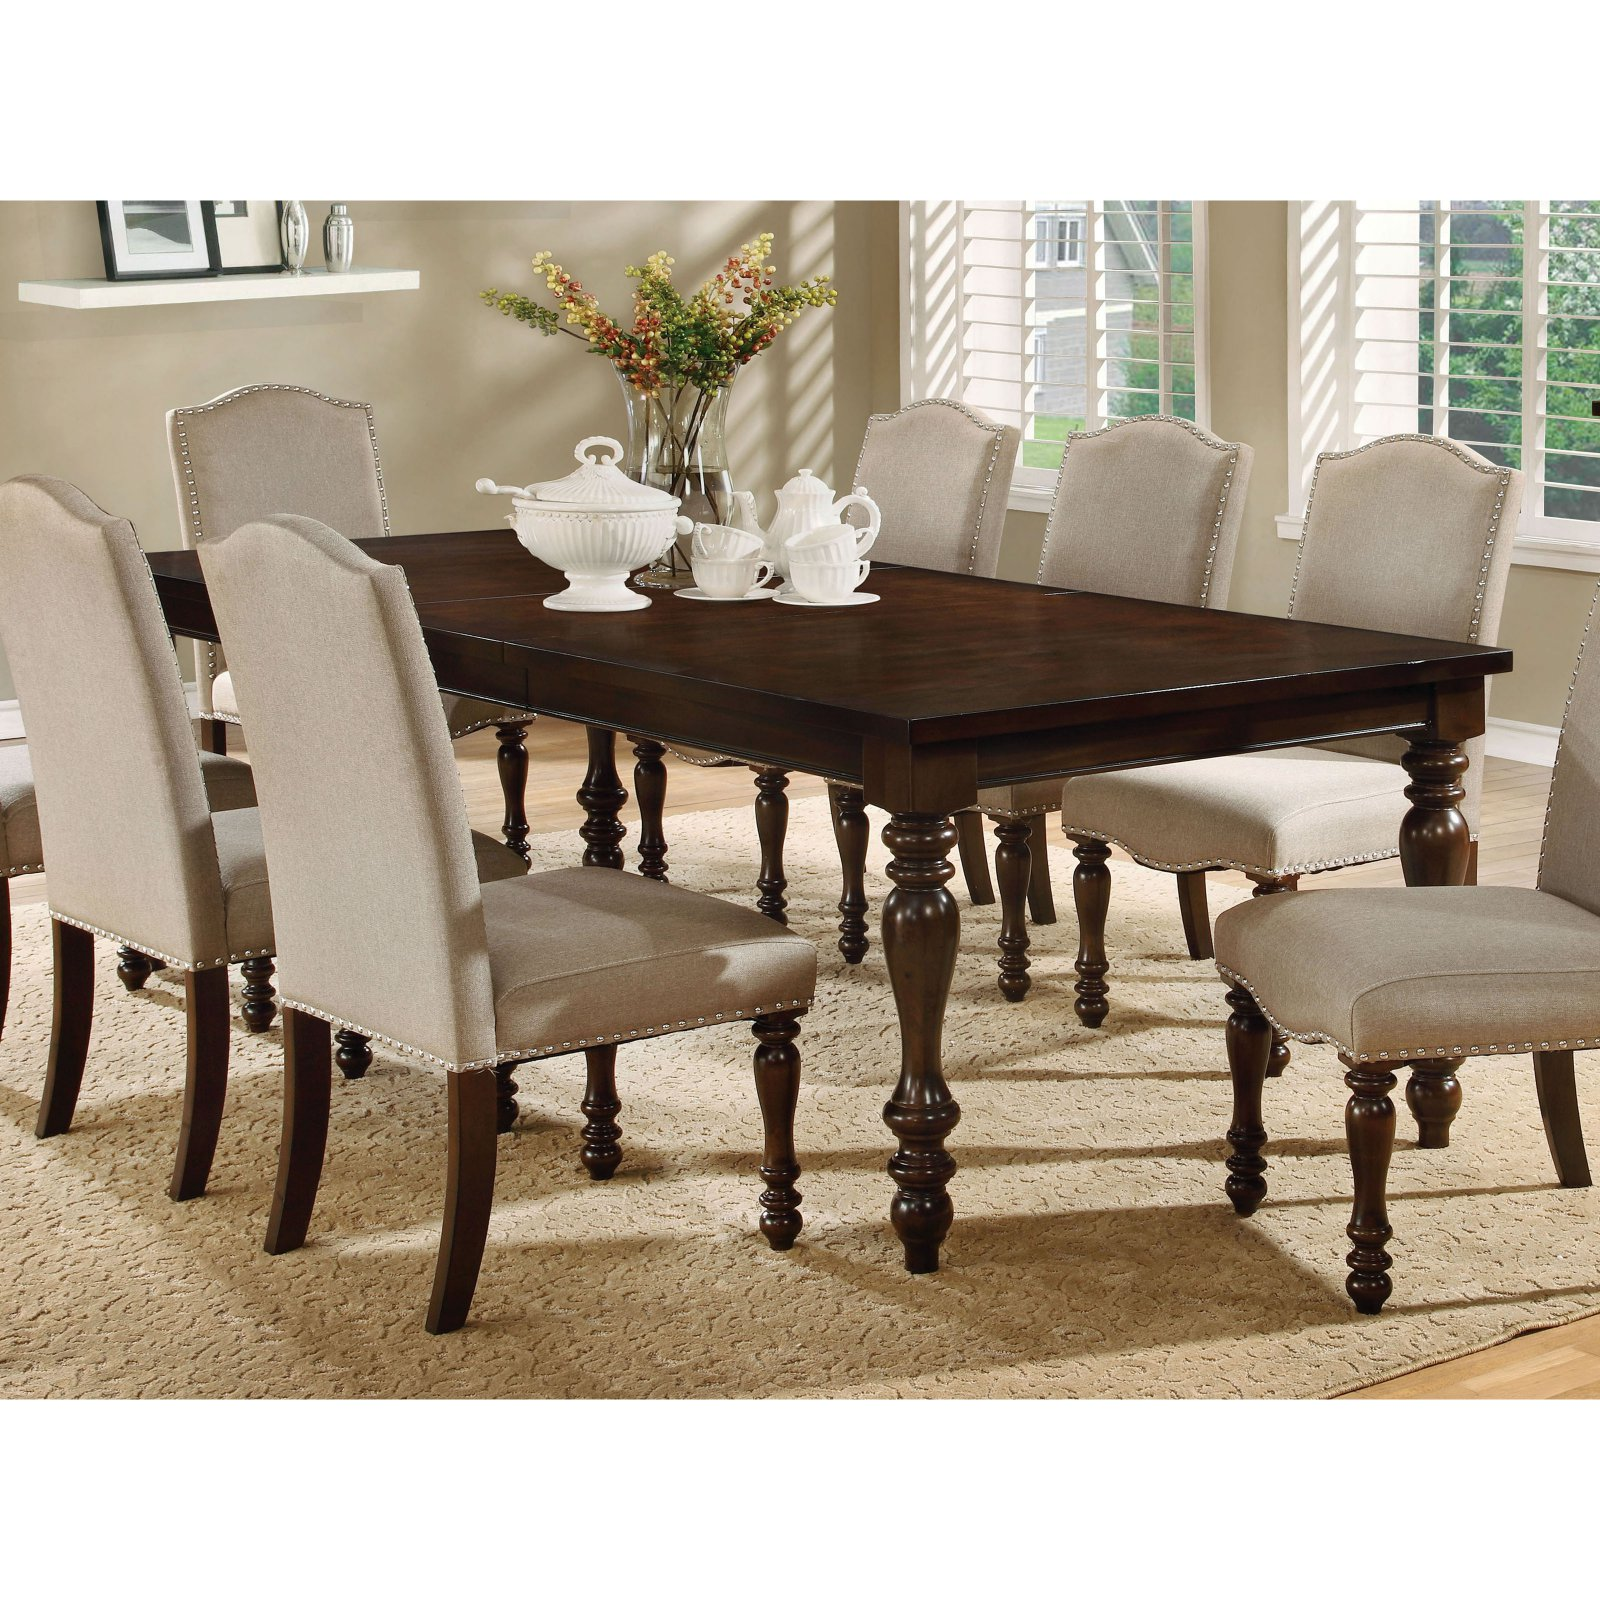 Furniture of America Perren Dining Table